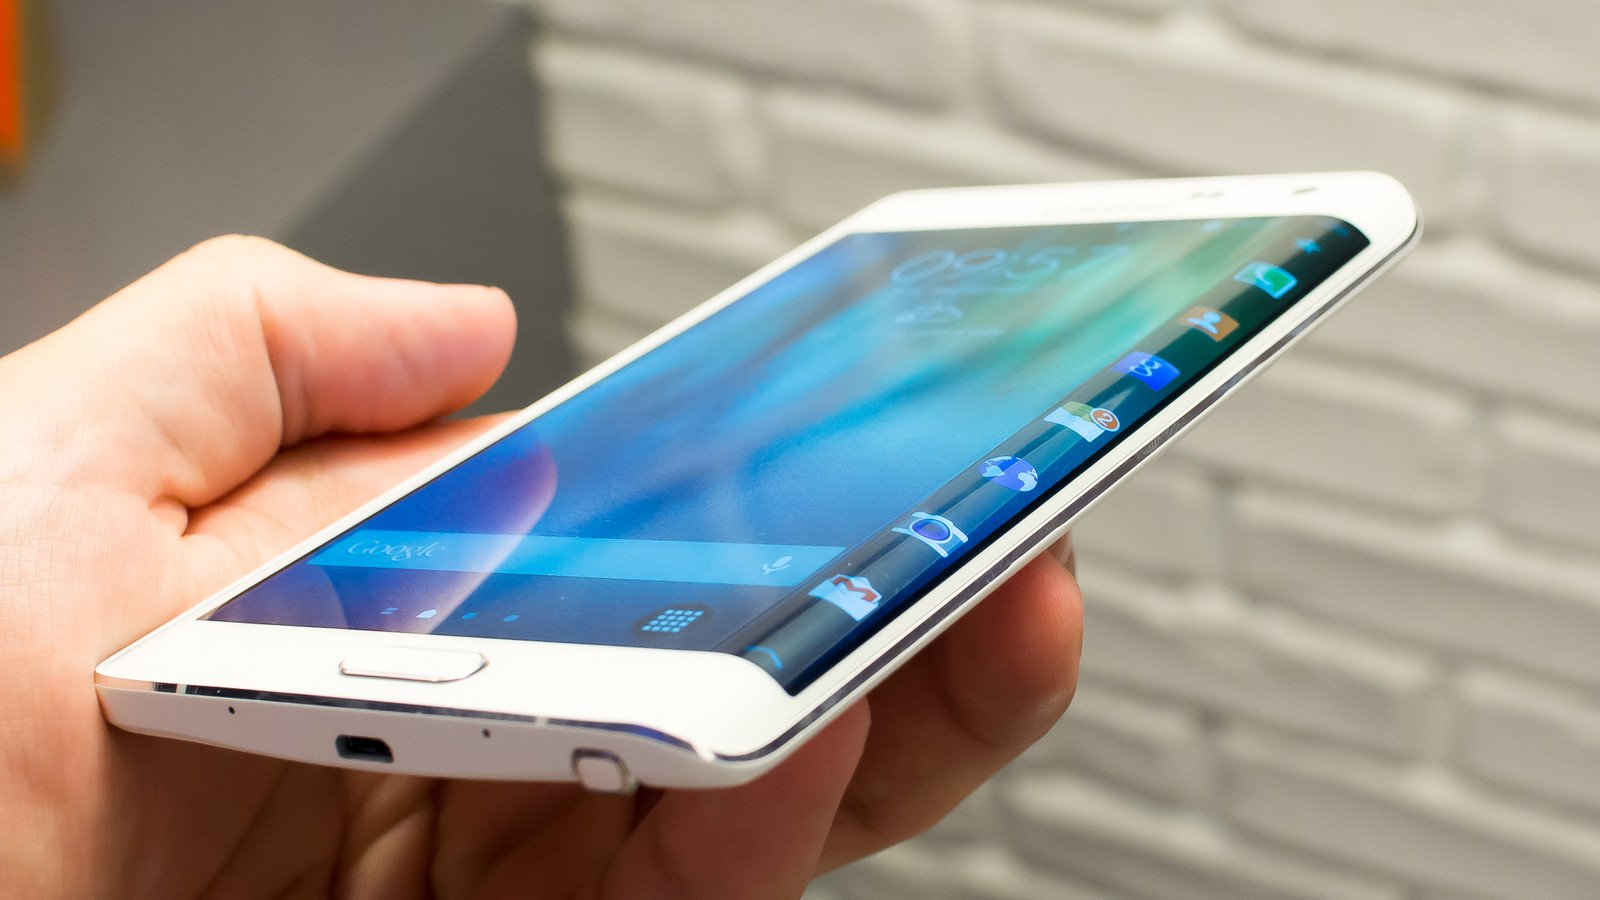 Samsung Galaxy Note Edge Price Revealed In US